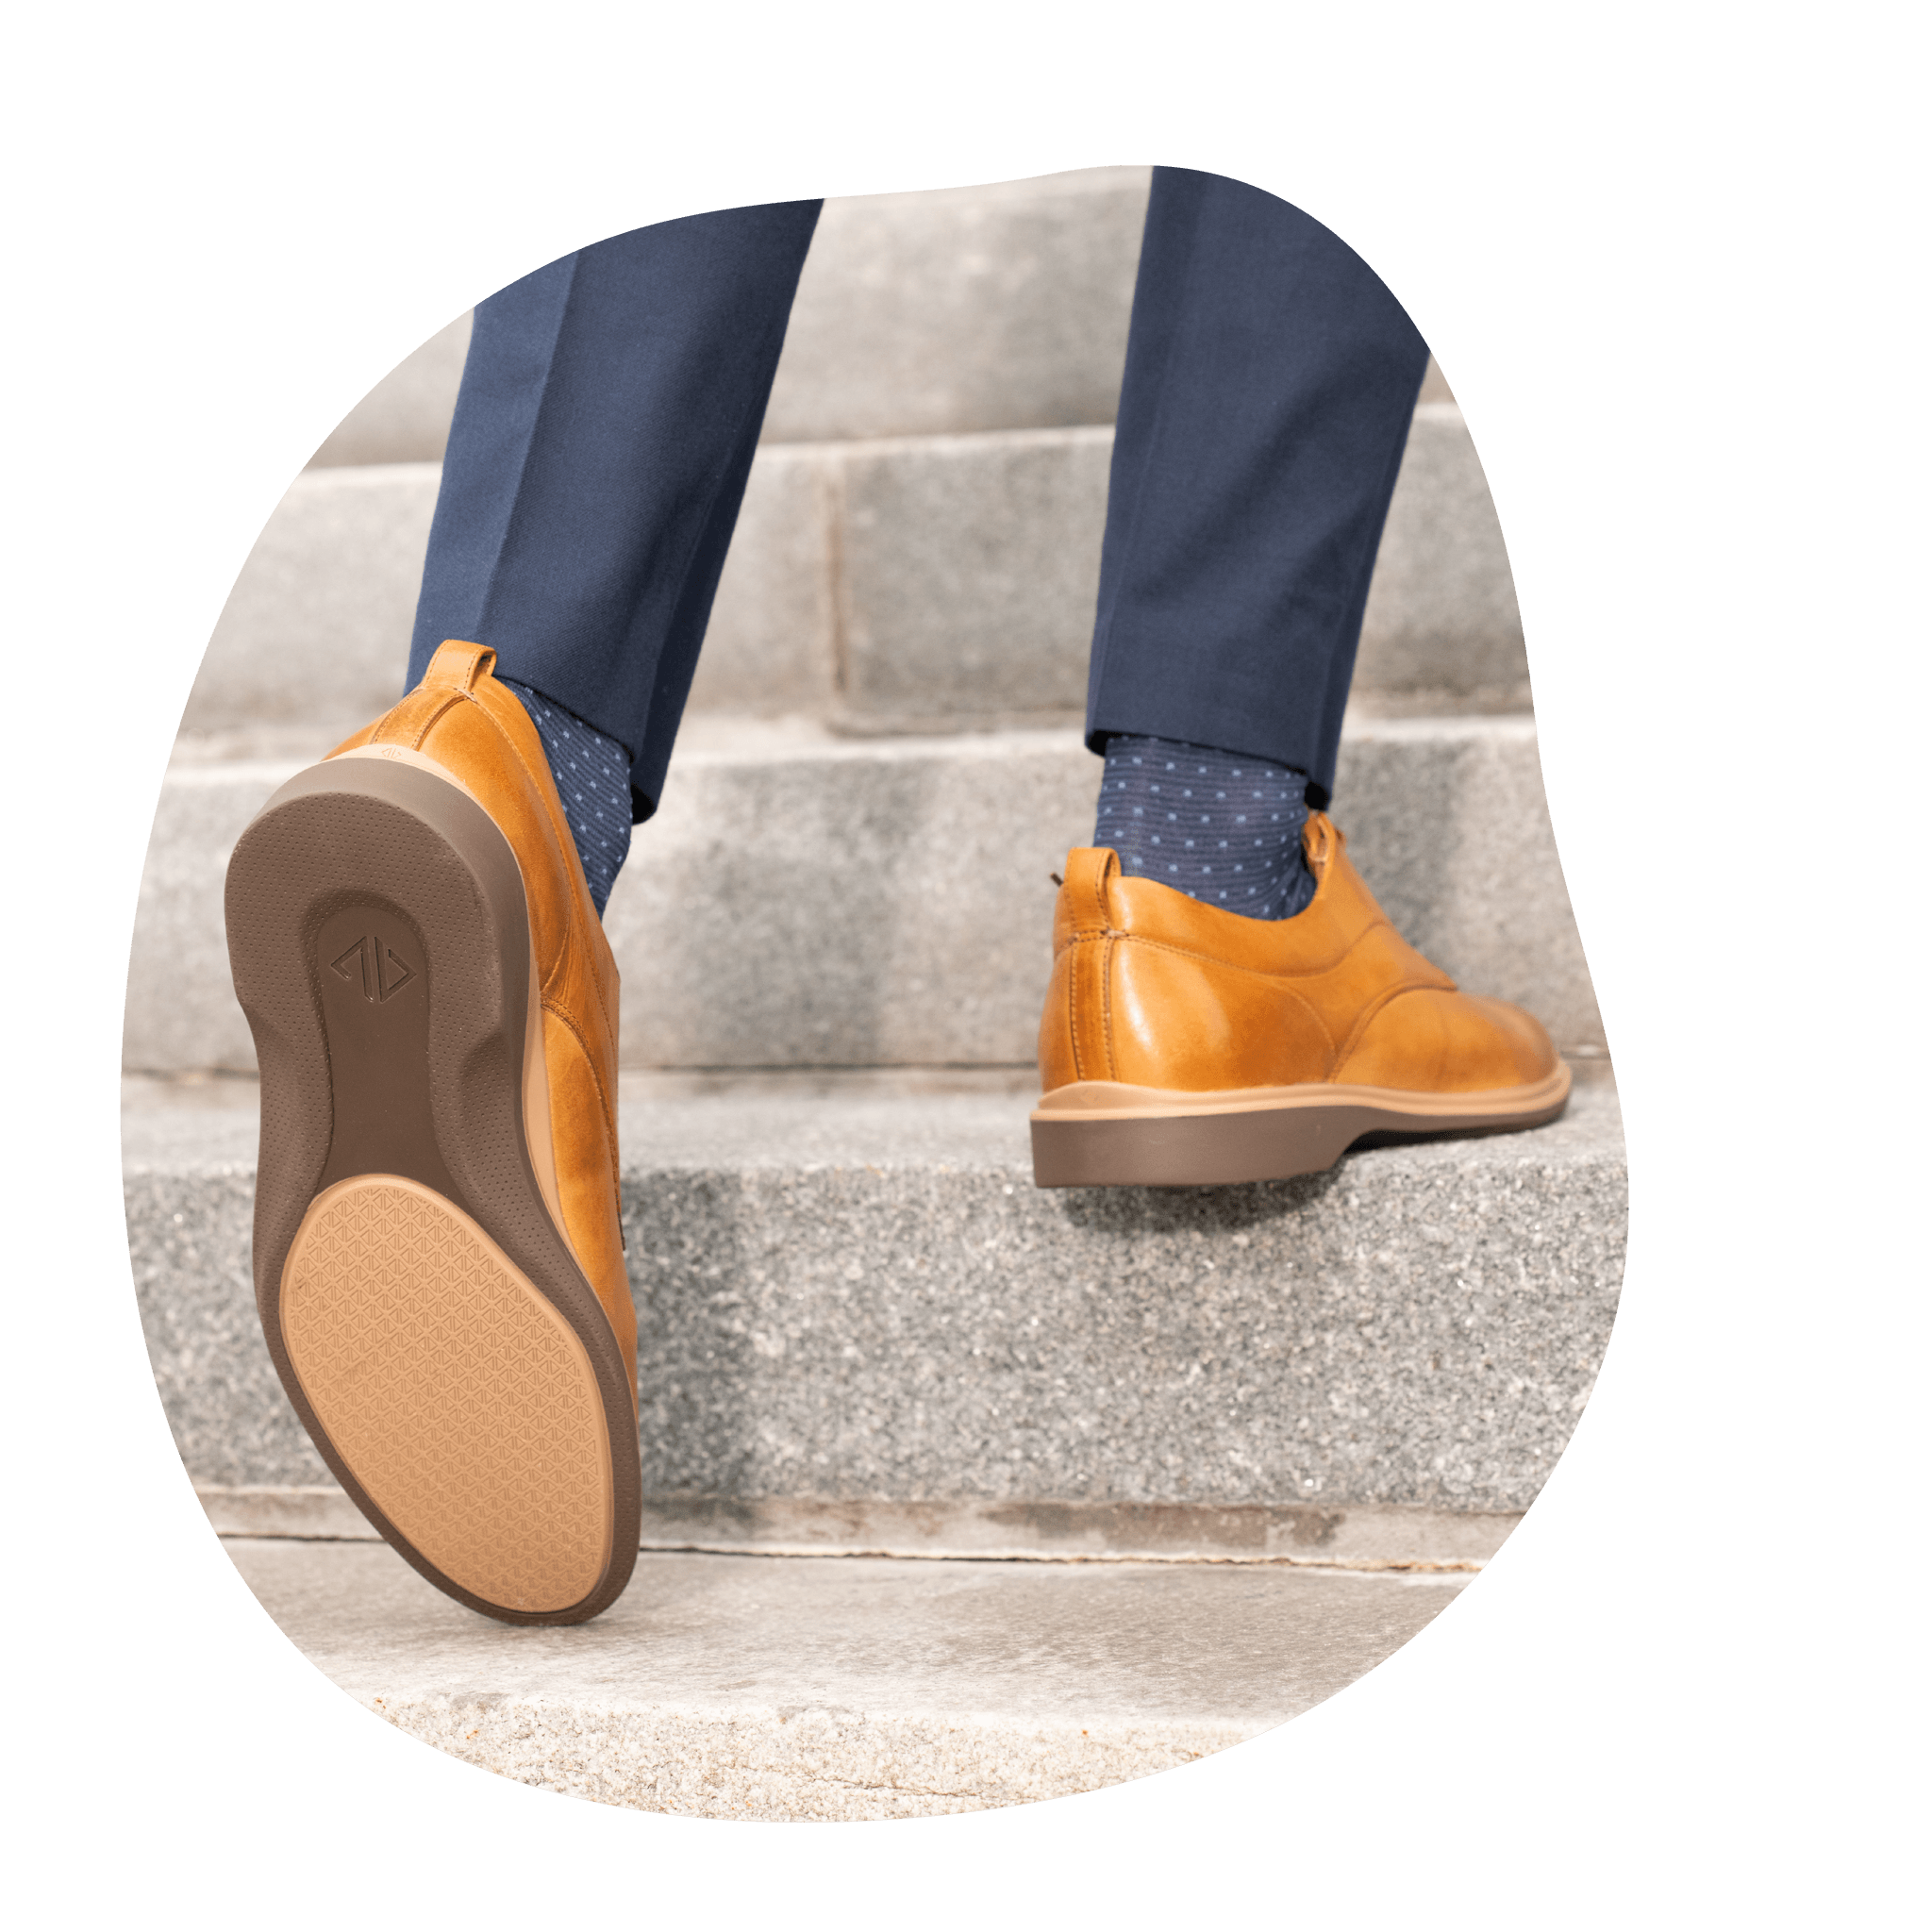 Amberjack The Original Tan Dress Shoe with Comfortable outsole